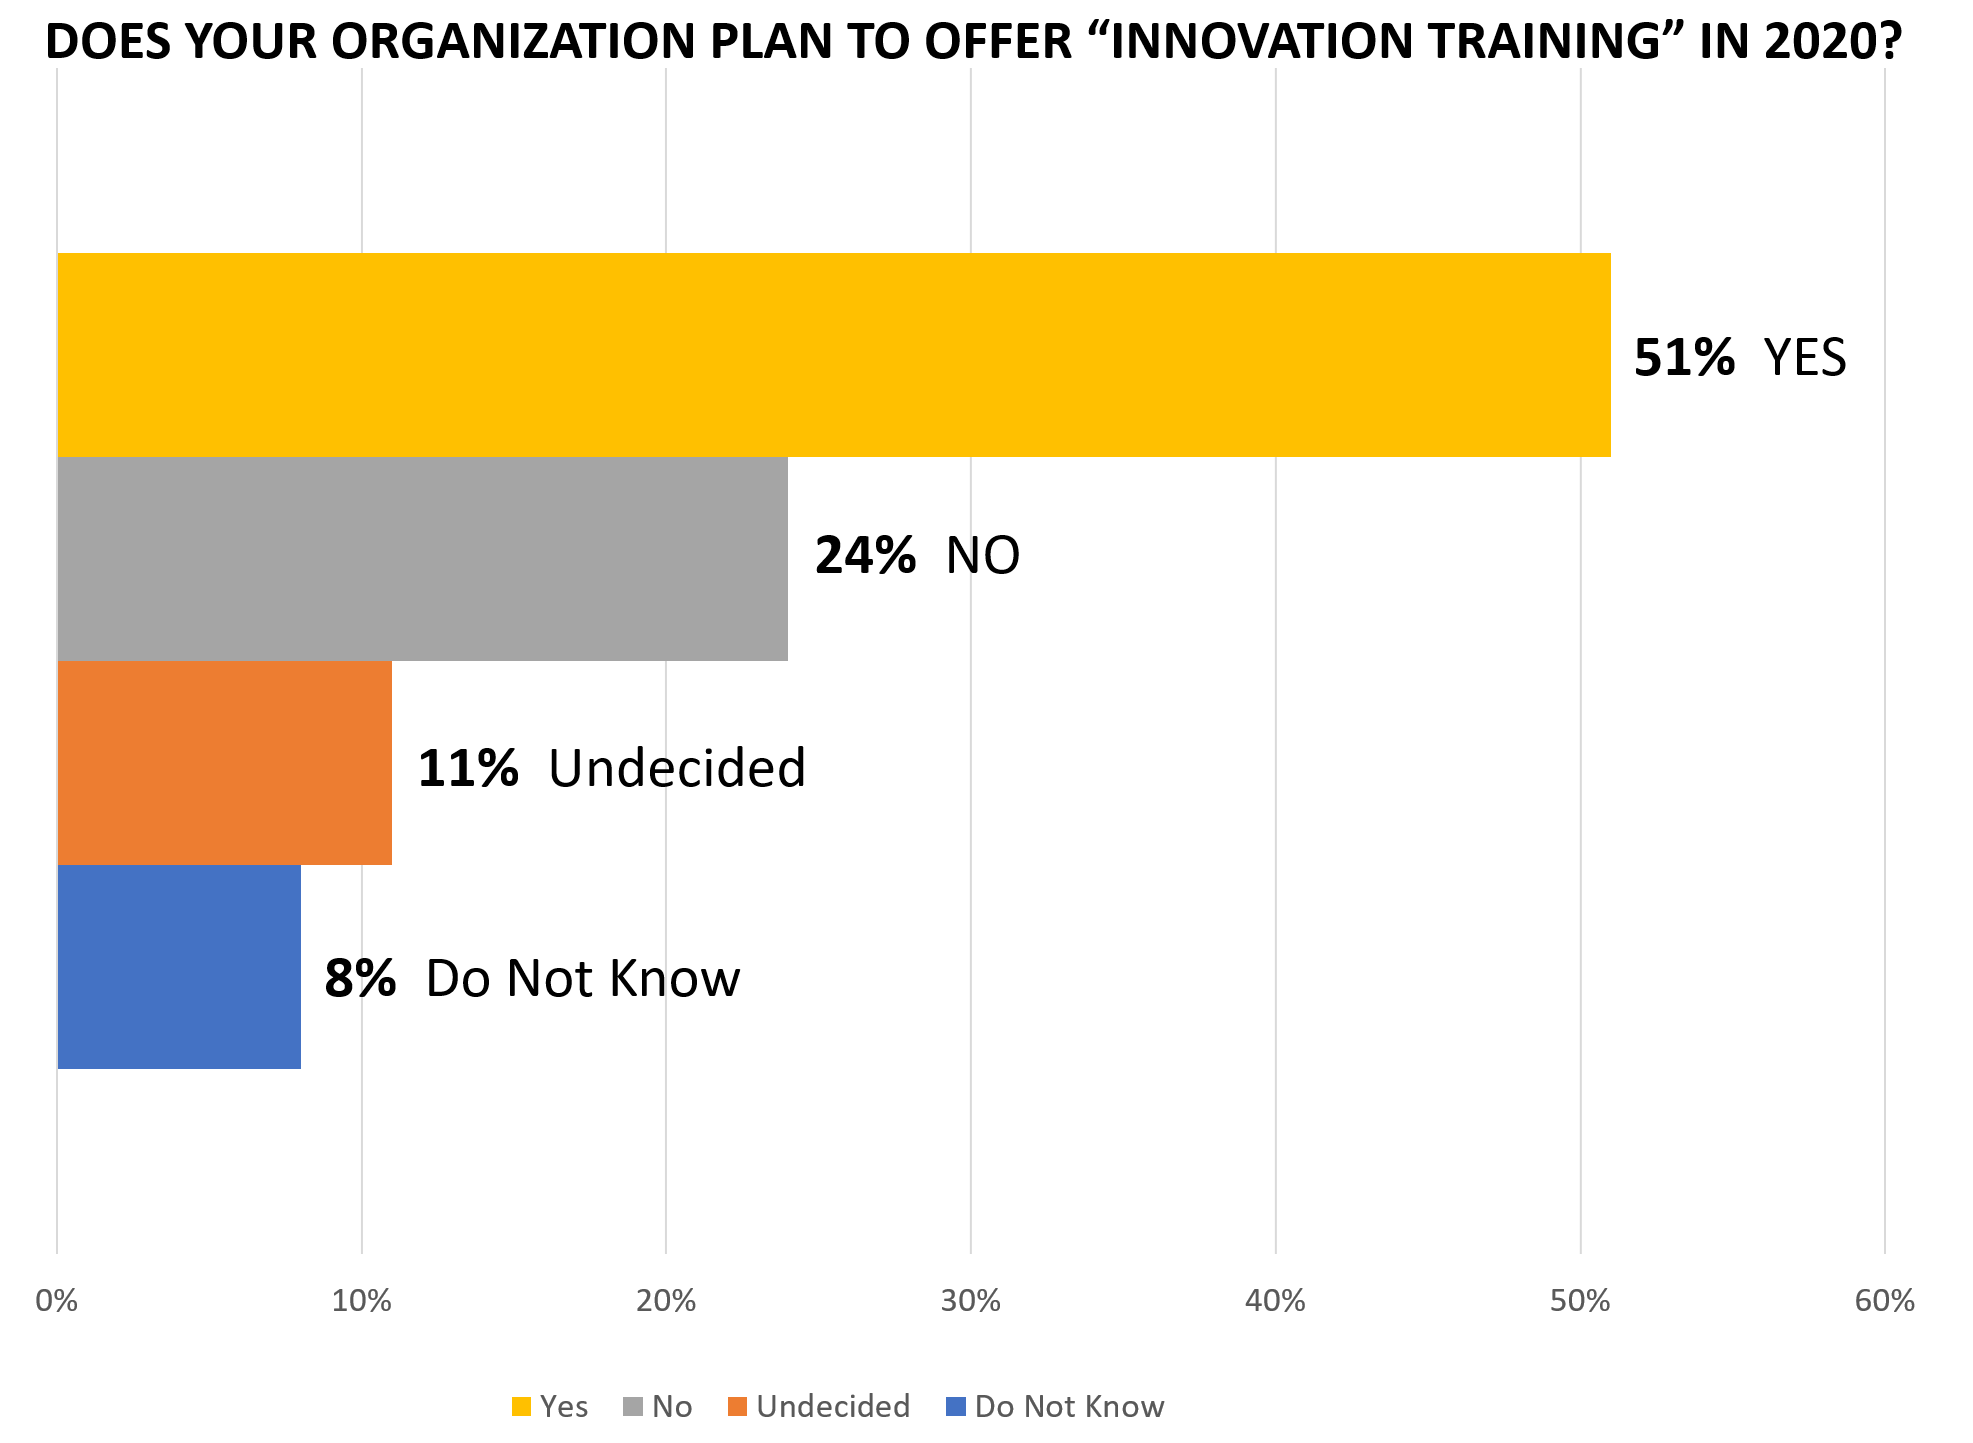 Innovation Training Plans Survey Question 1 Results SOLUTIONSpeople.com